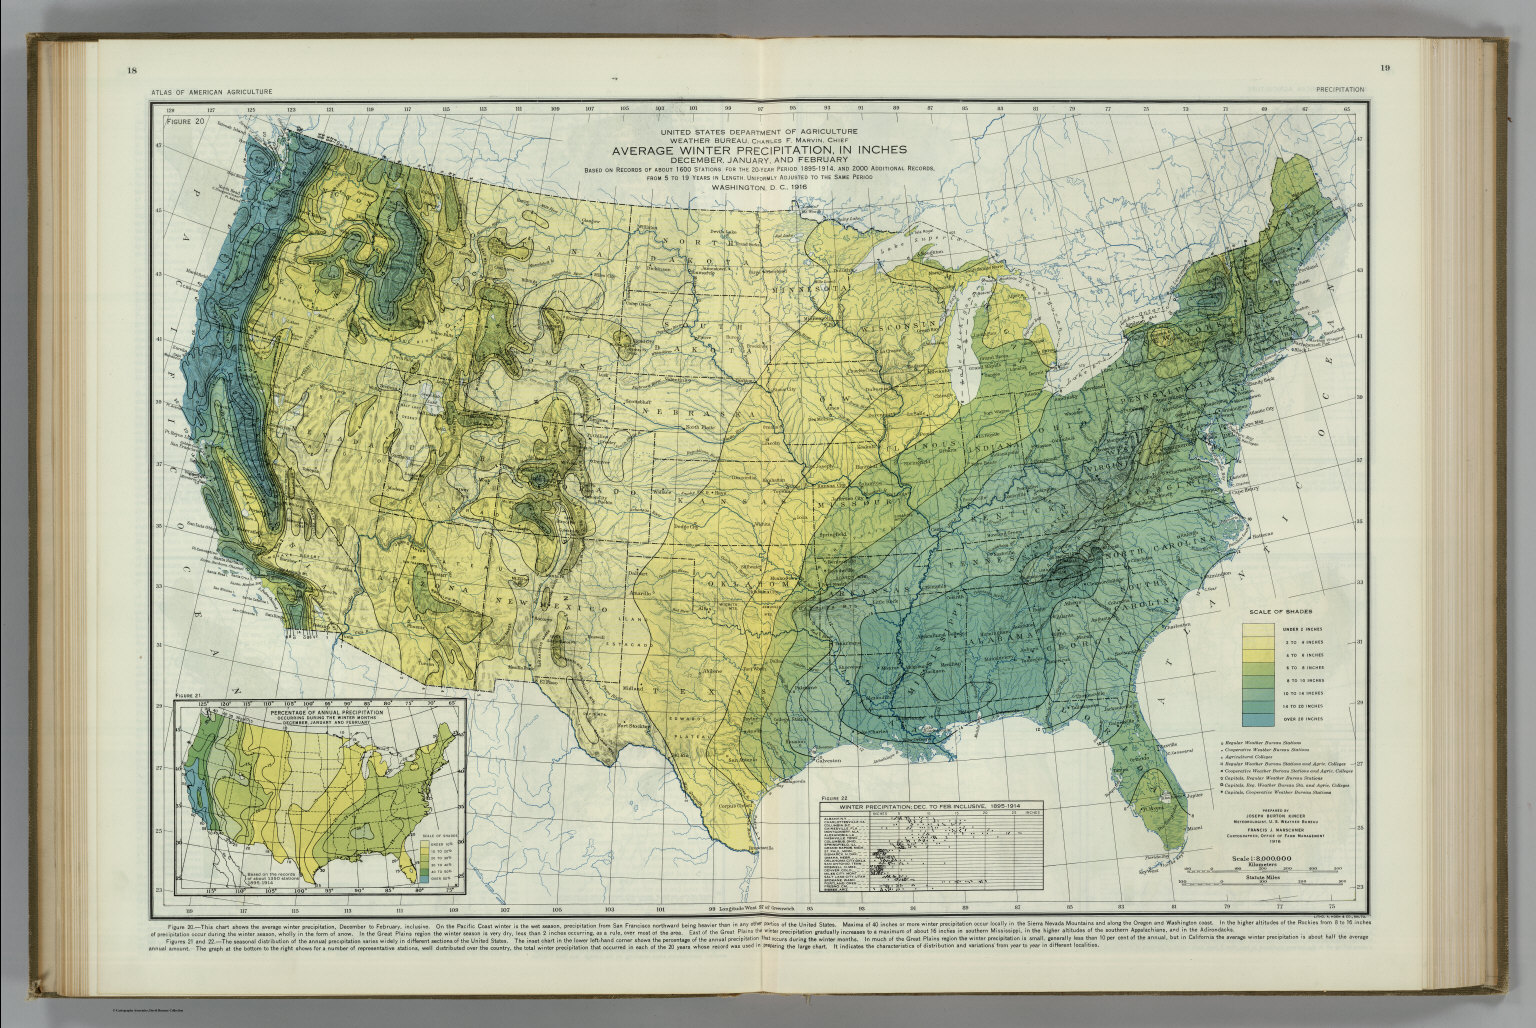 American Agriculture Atlas of American Agriculture